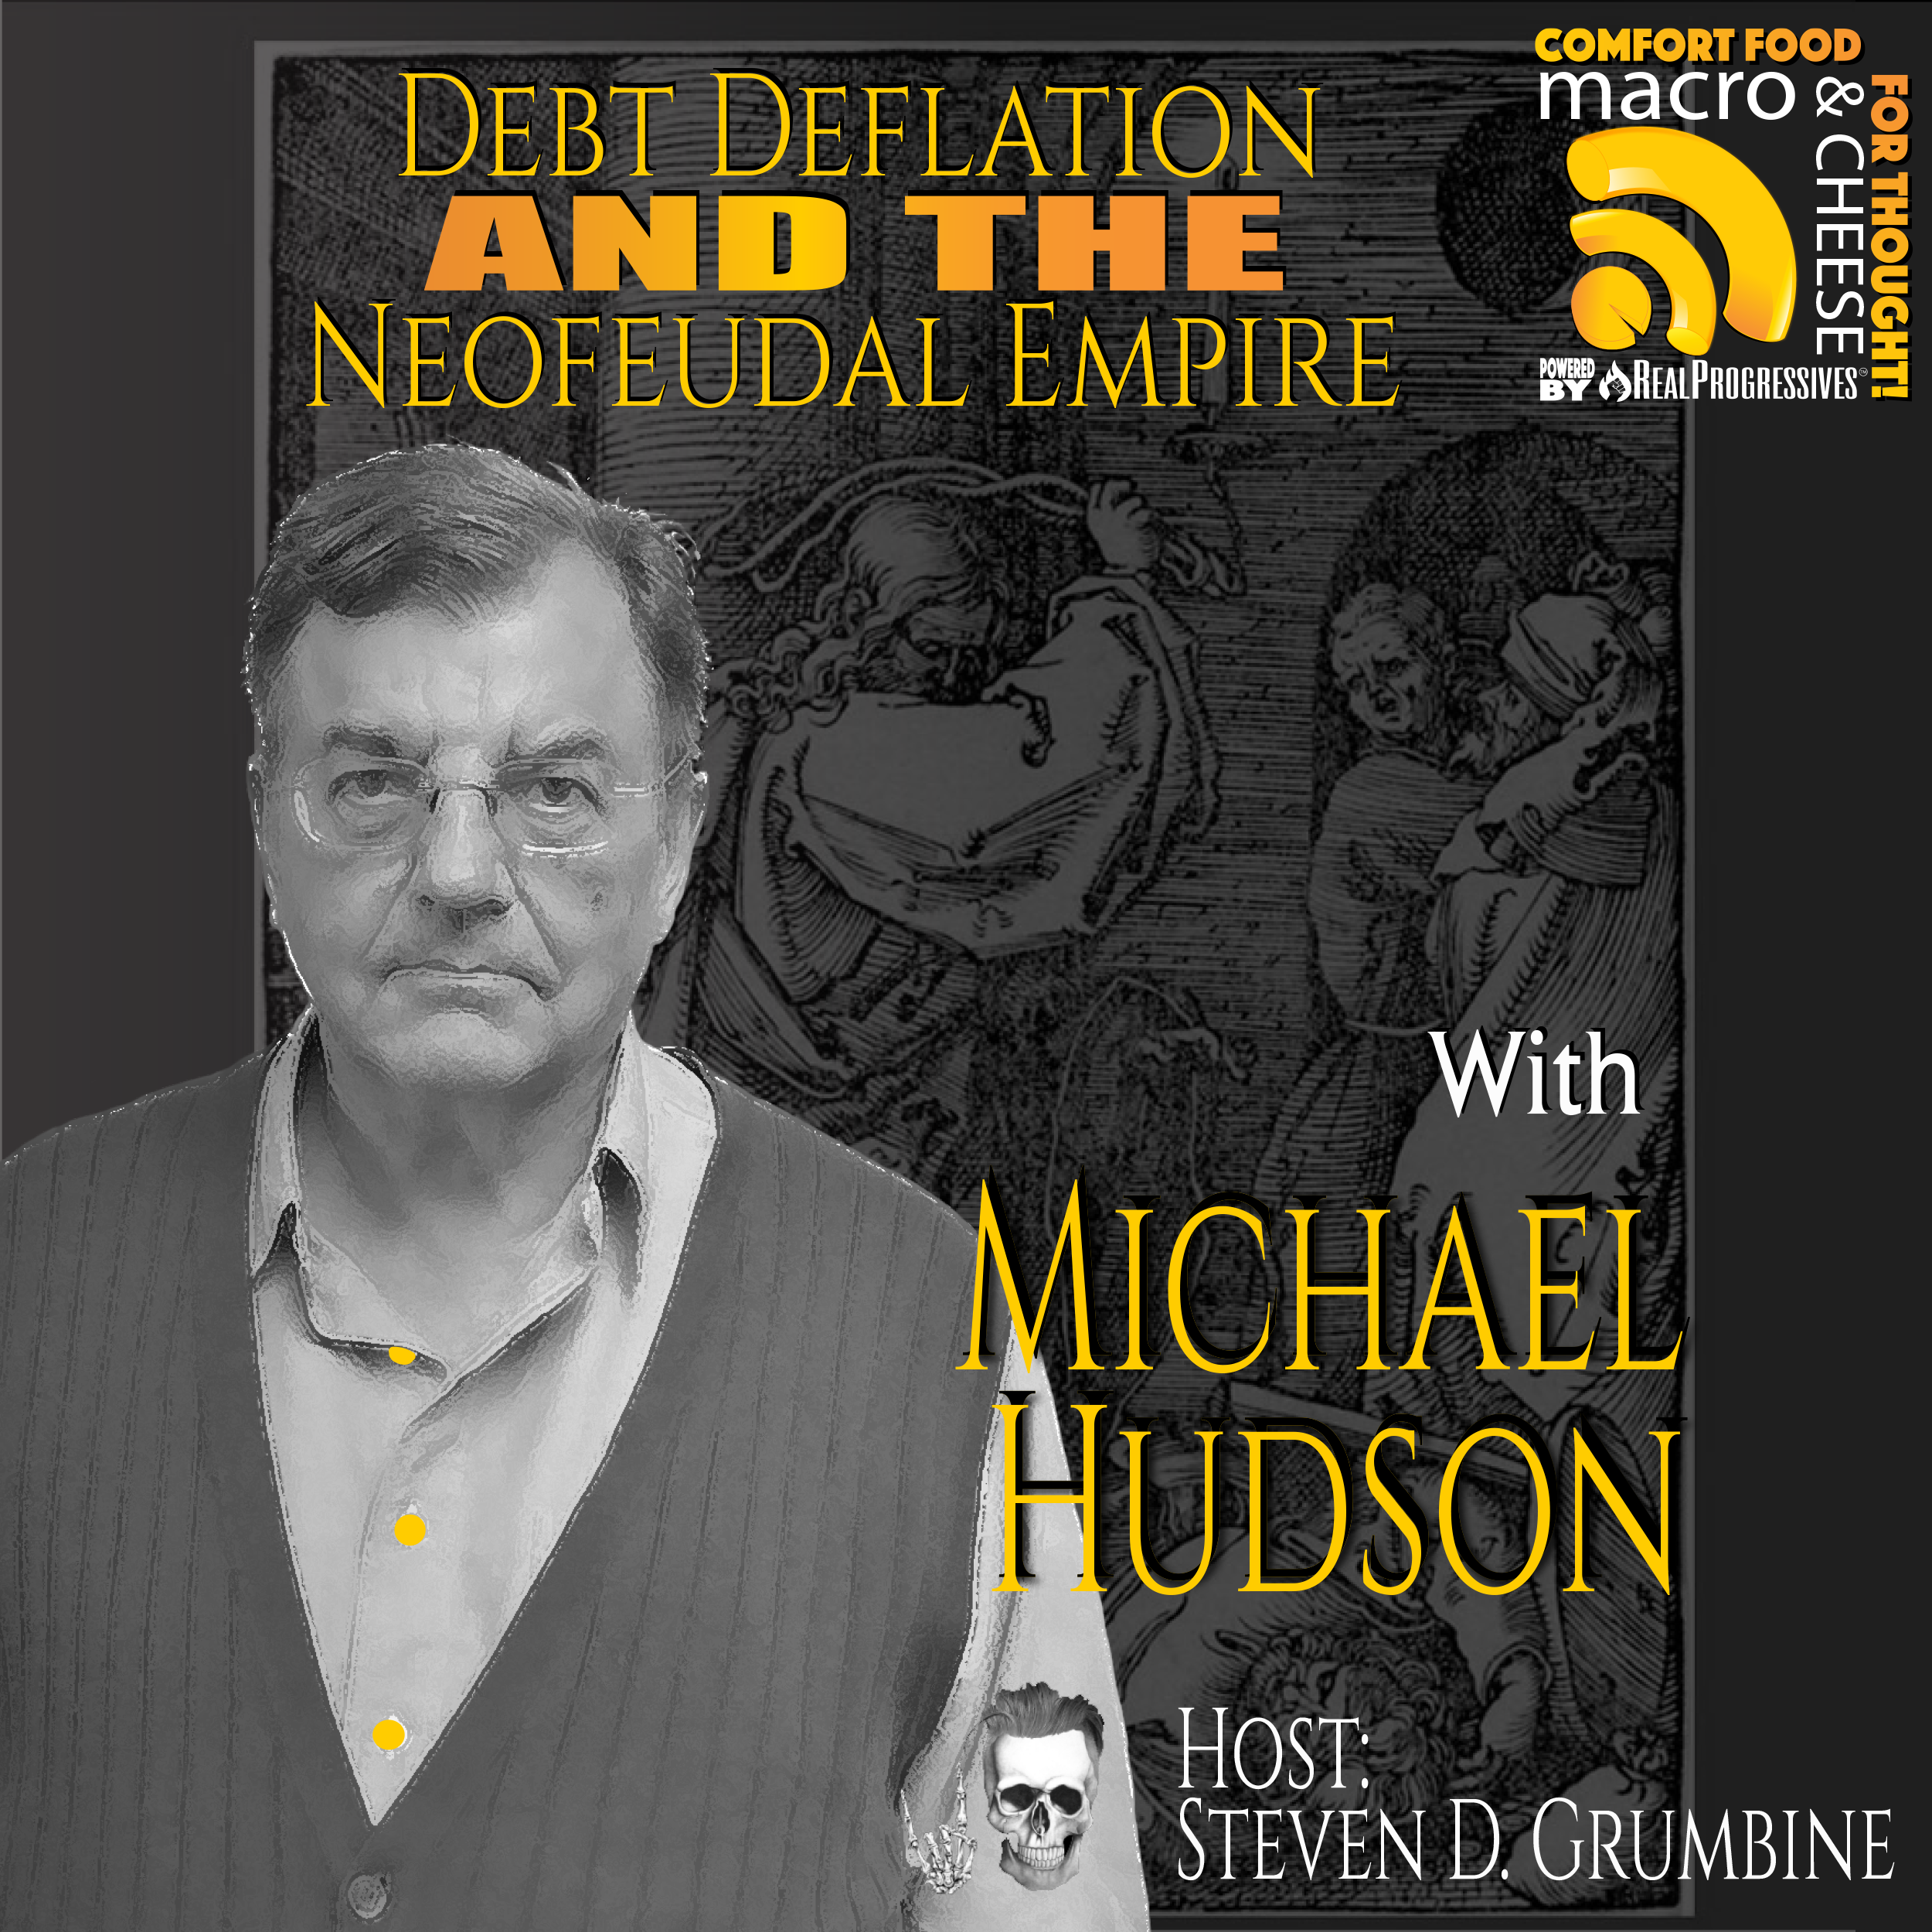 Debt Deflation and the Neofeudal Empire with Michael Hudson